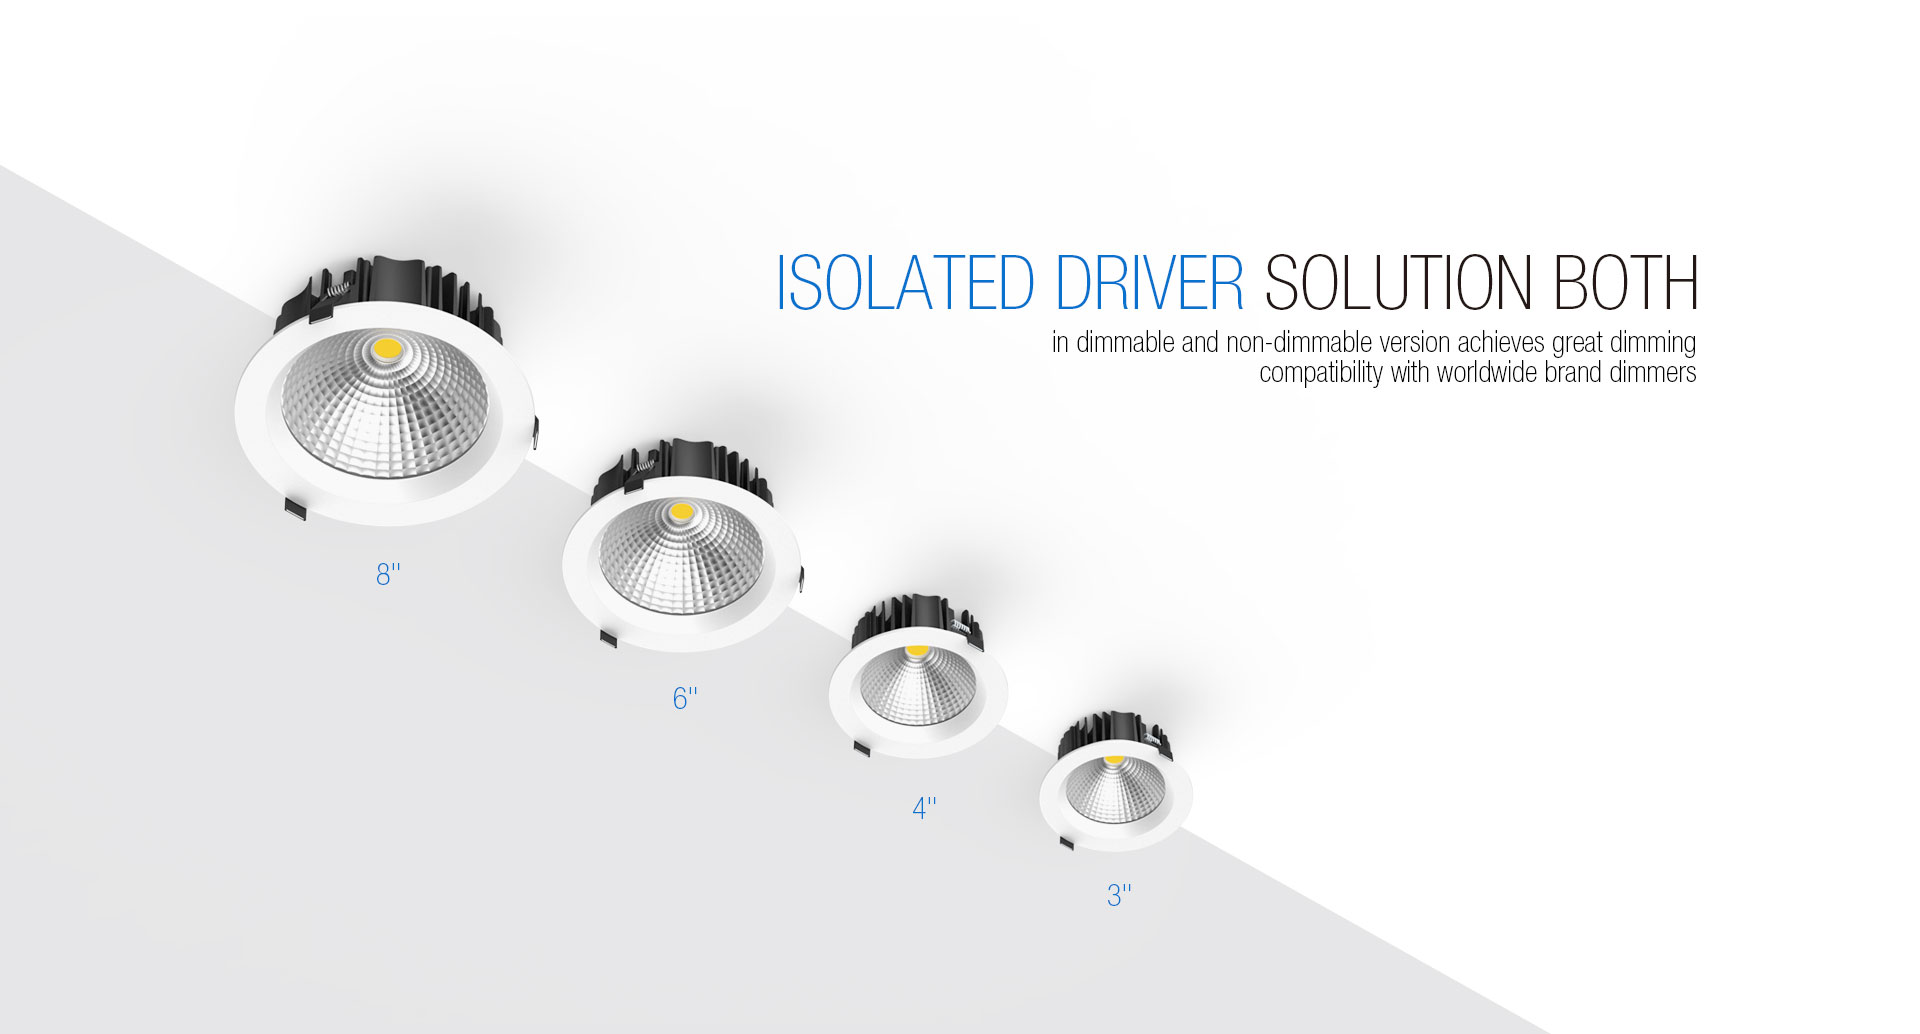 Isolated Driver LED Downlight Illumination_04